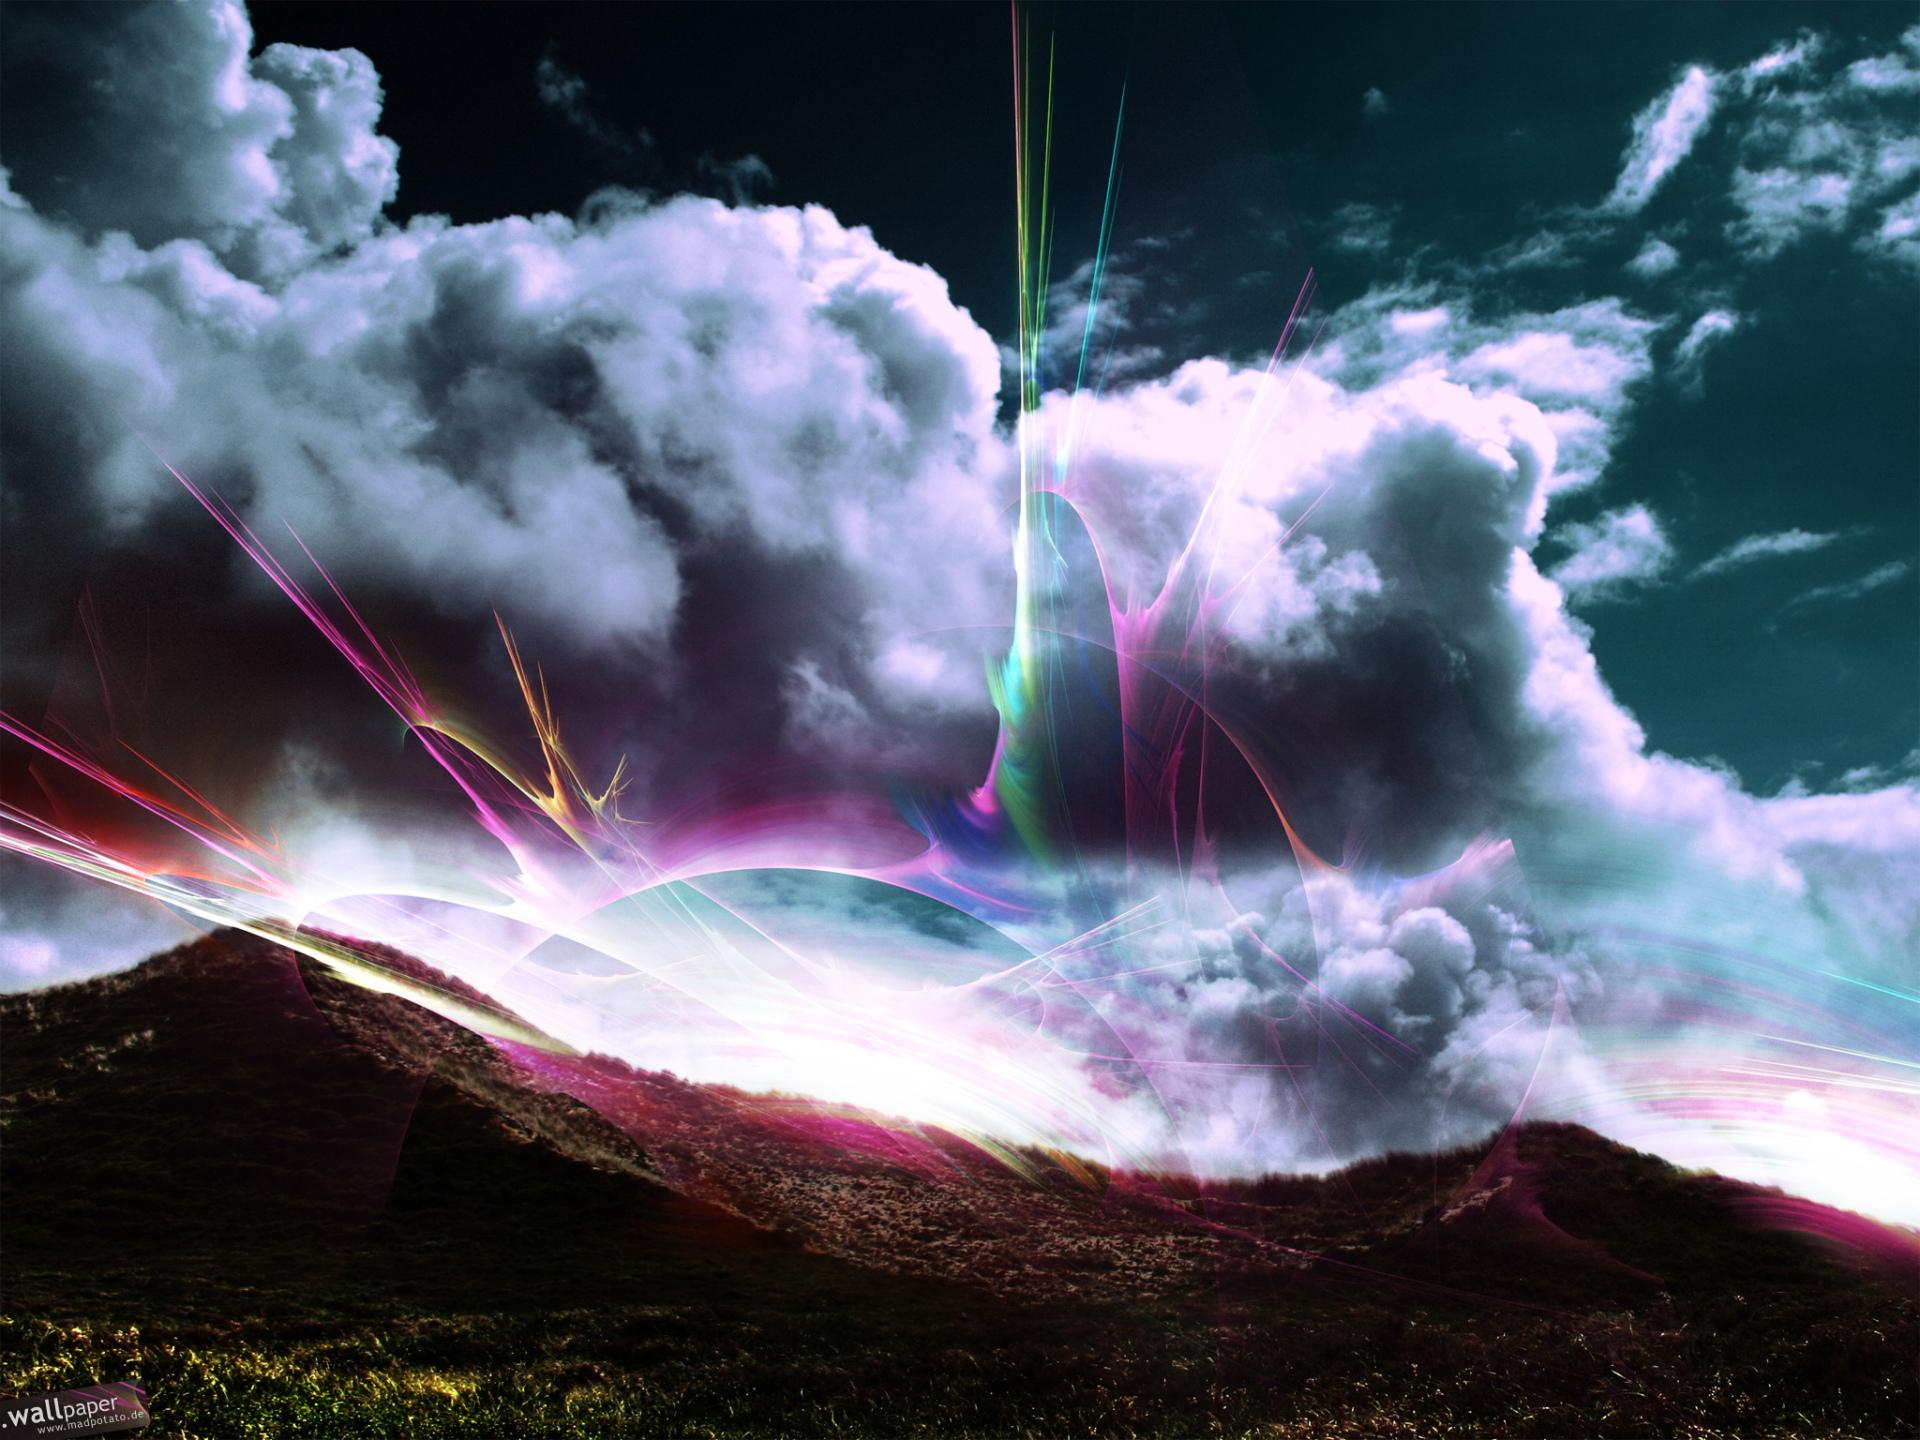 Sky Artistic wallpapers HD quality